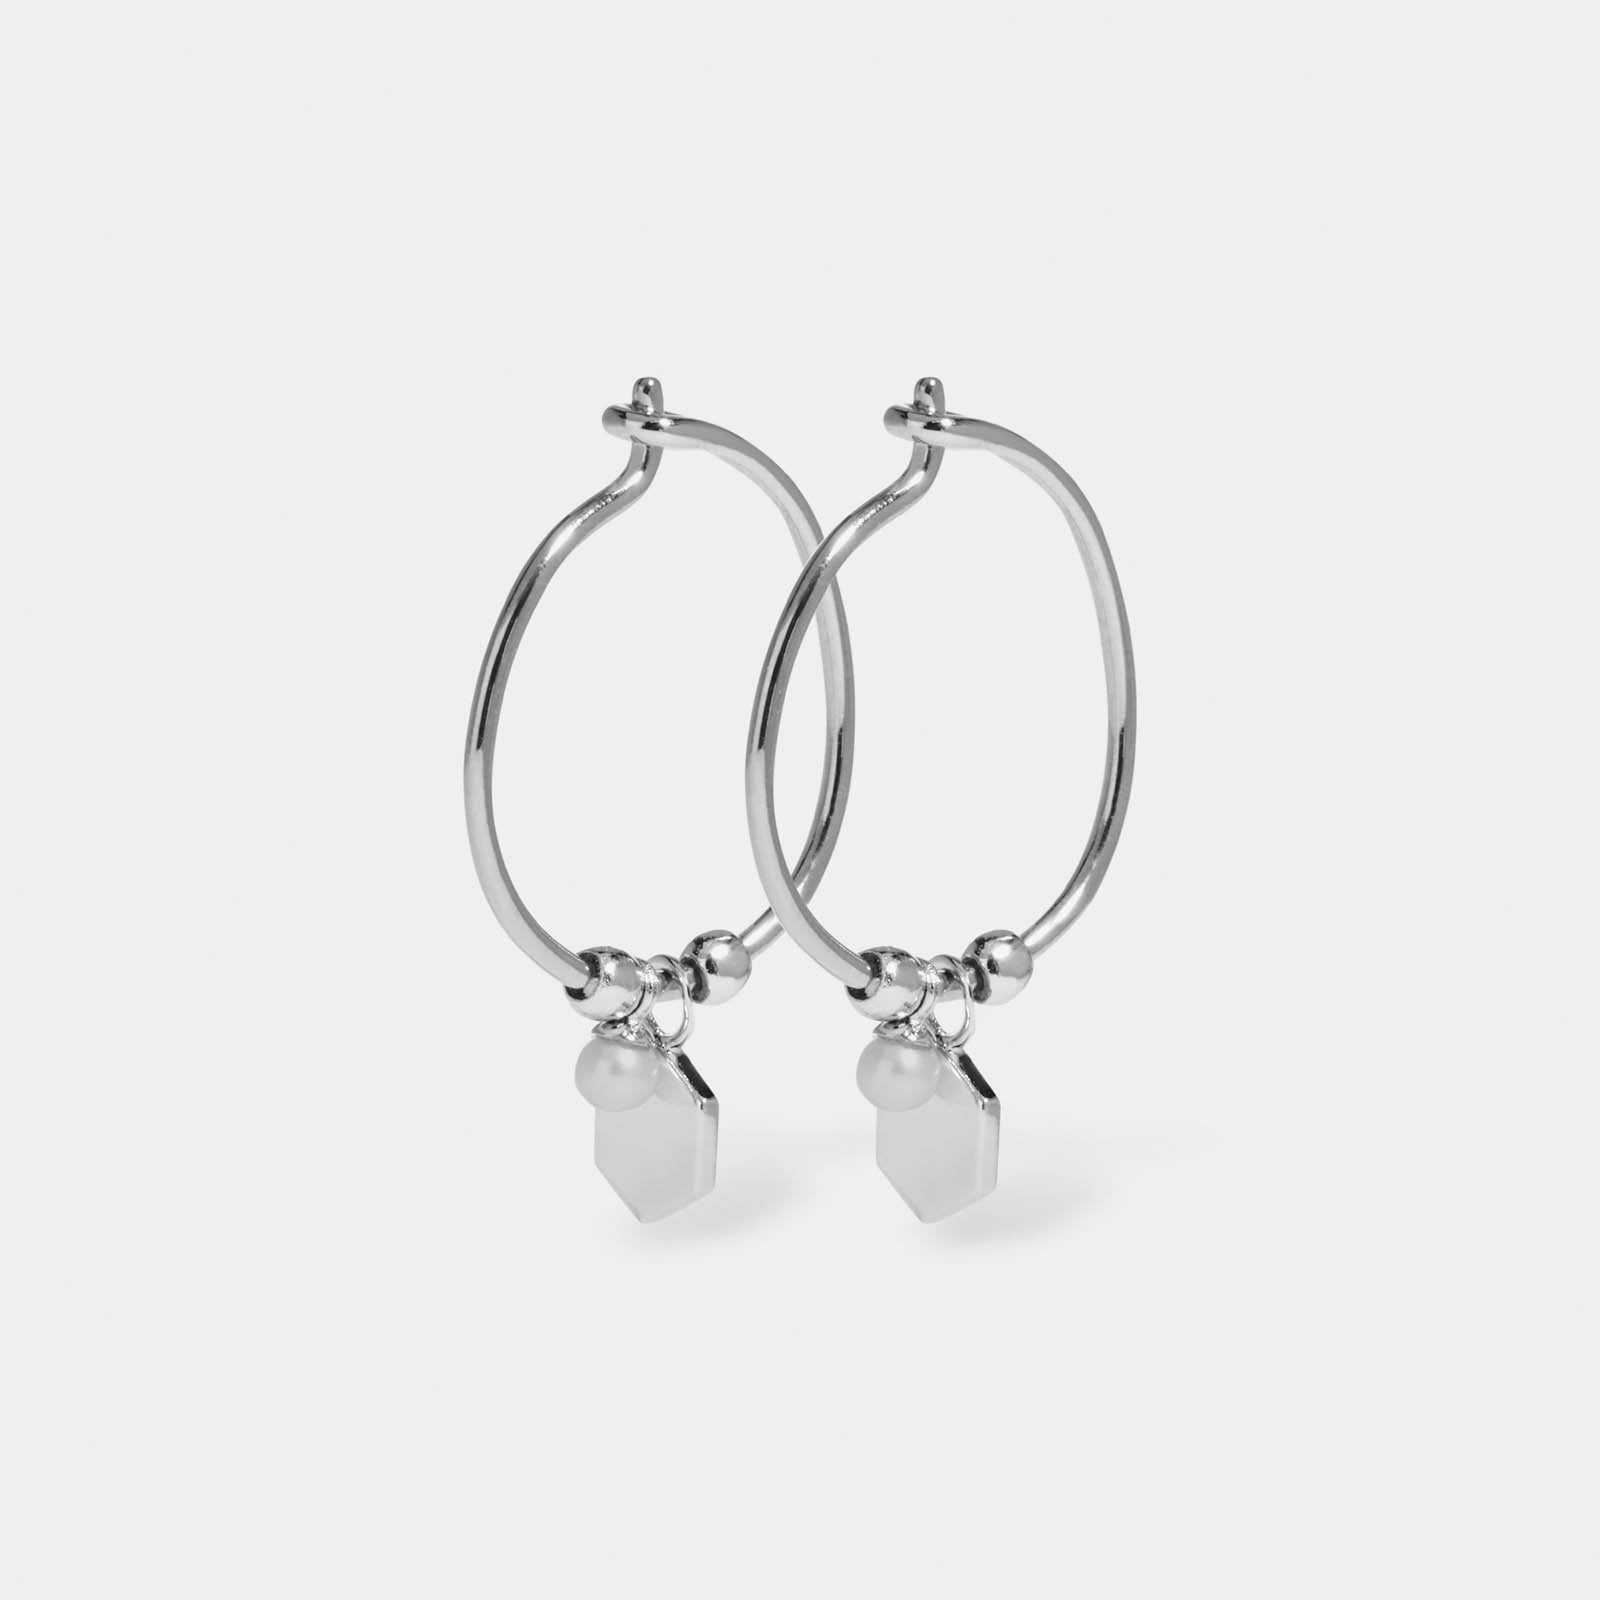 CLUSE Essentielle Silver Hexagon and Pearl Charm Hoop Earrings CLJ52002 - Orecchini